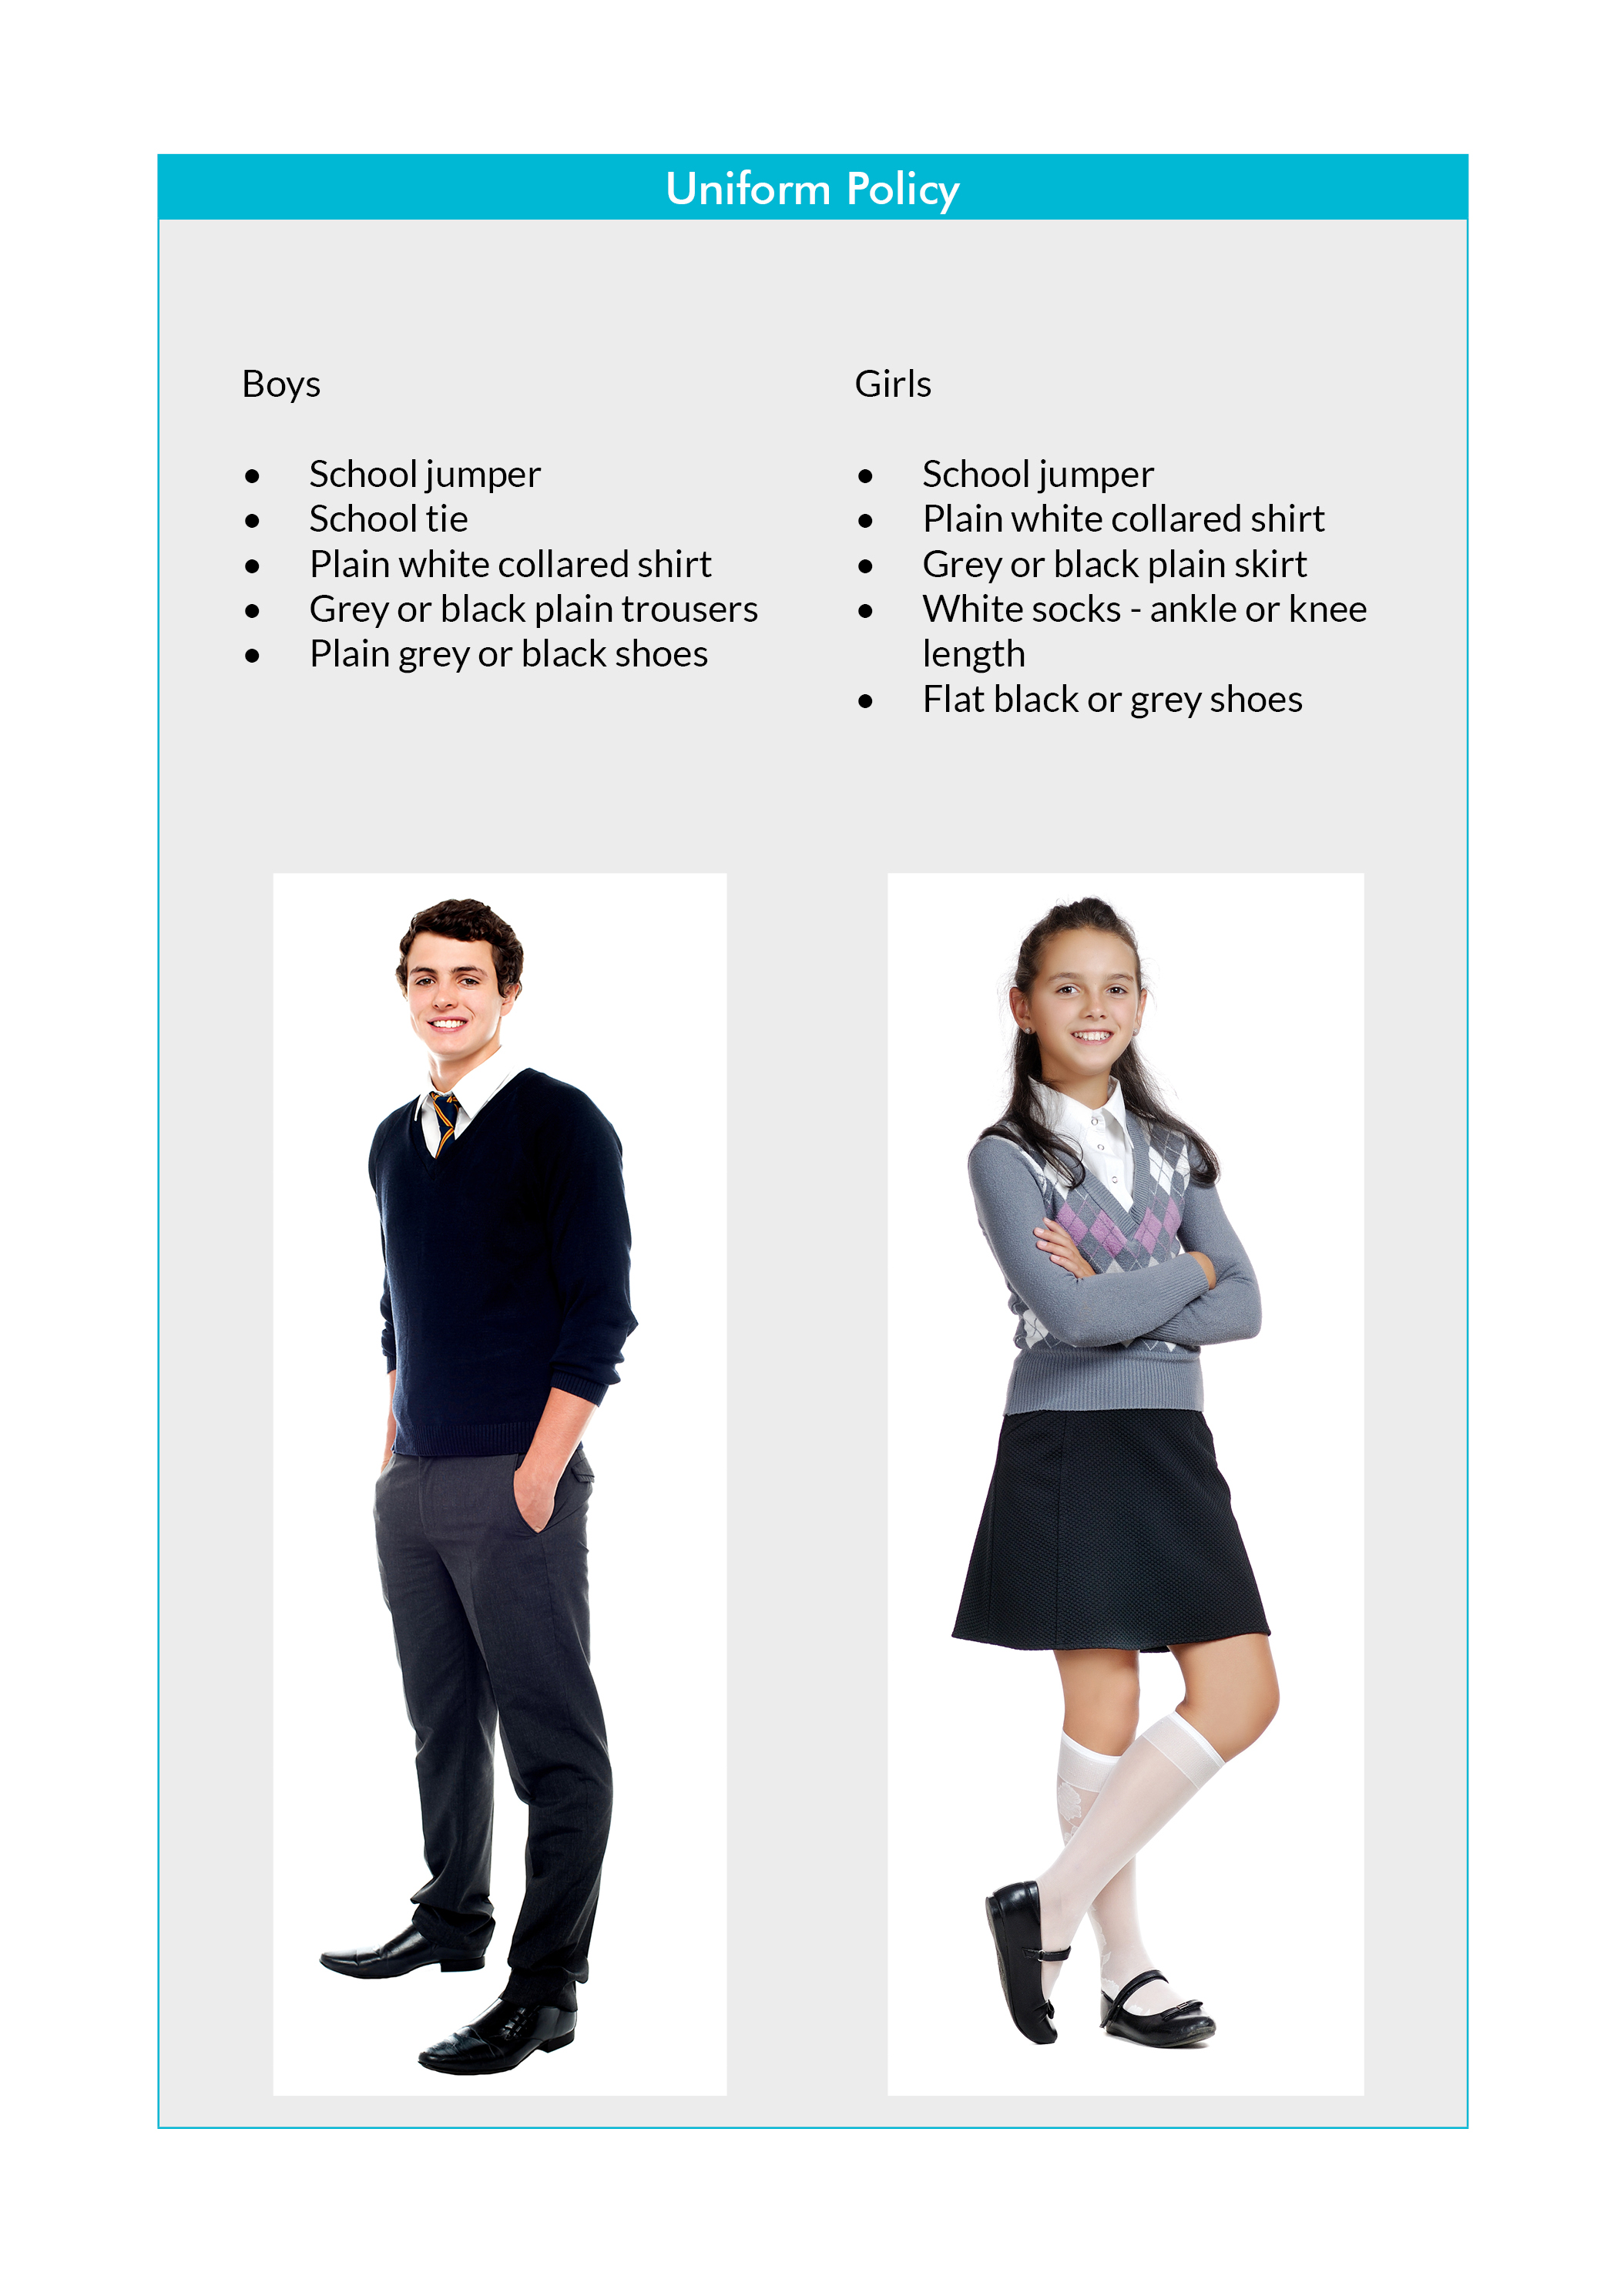 Policies - Uniform Template Grey Background